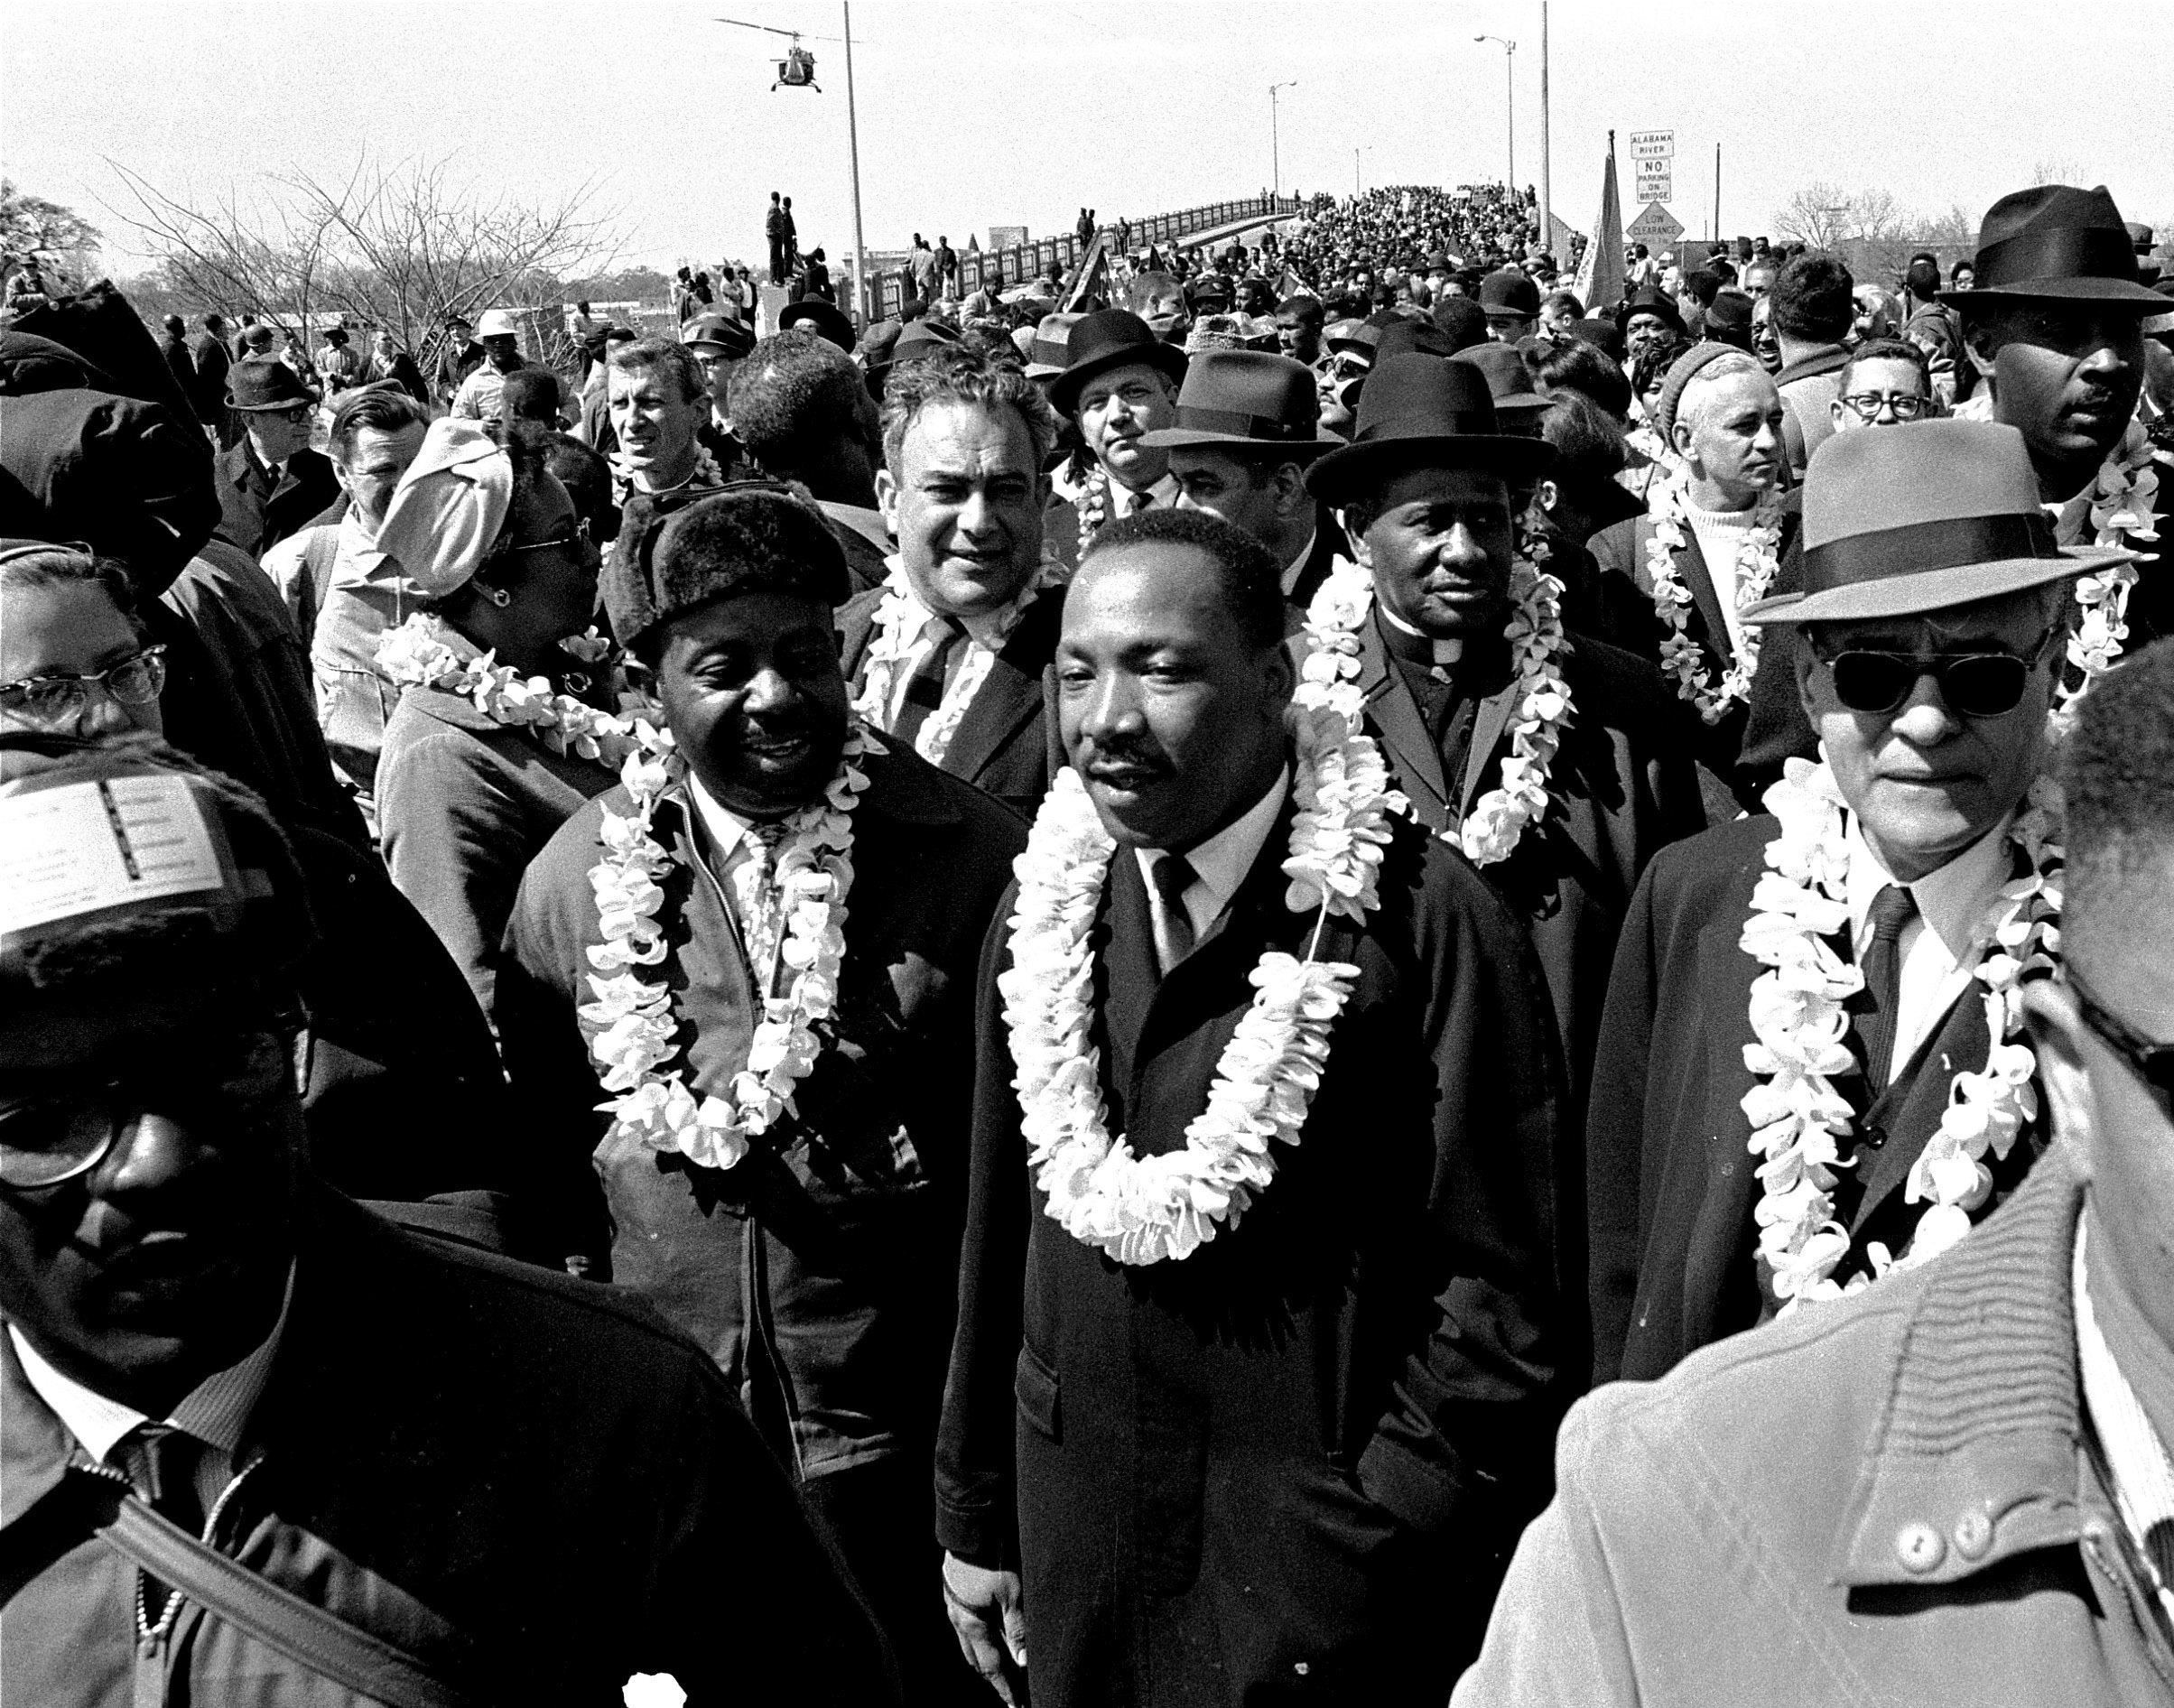 the life and legacy of martin luther king jr shareamerica martin luther king leading throng of ers across bridge acirccopy ap images